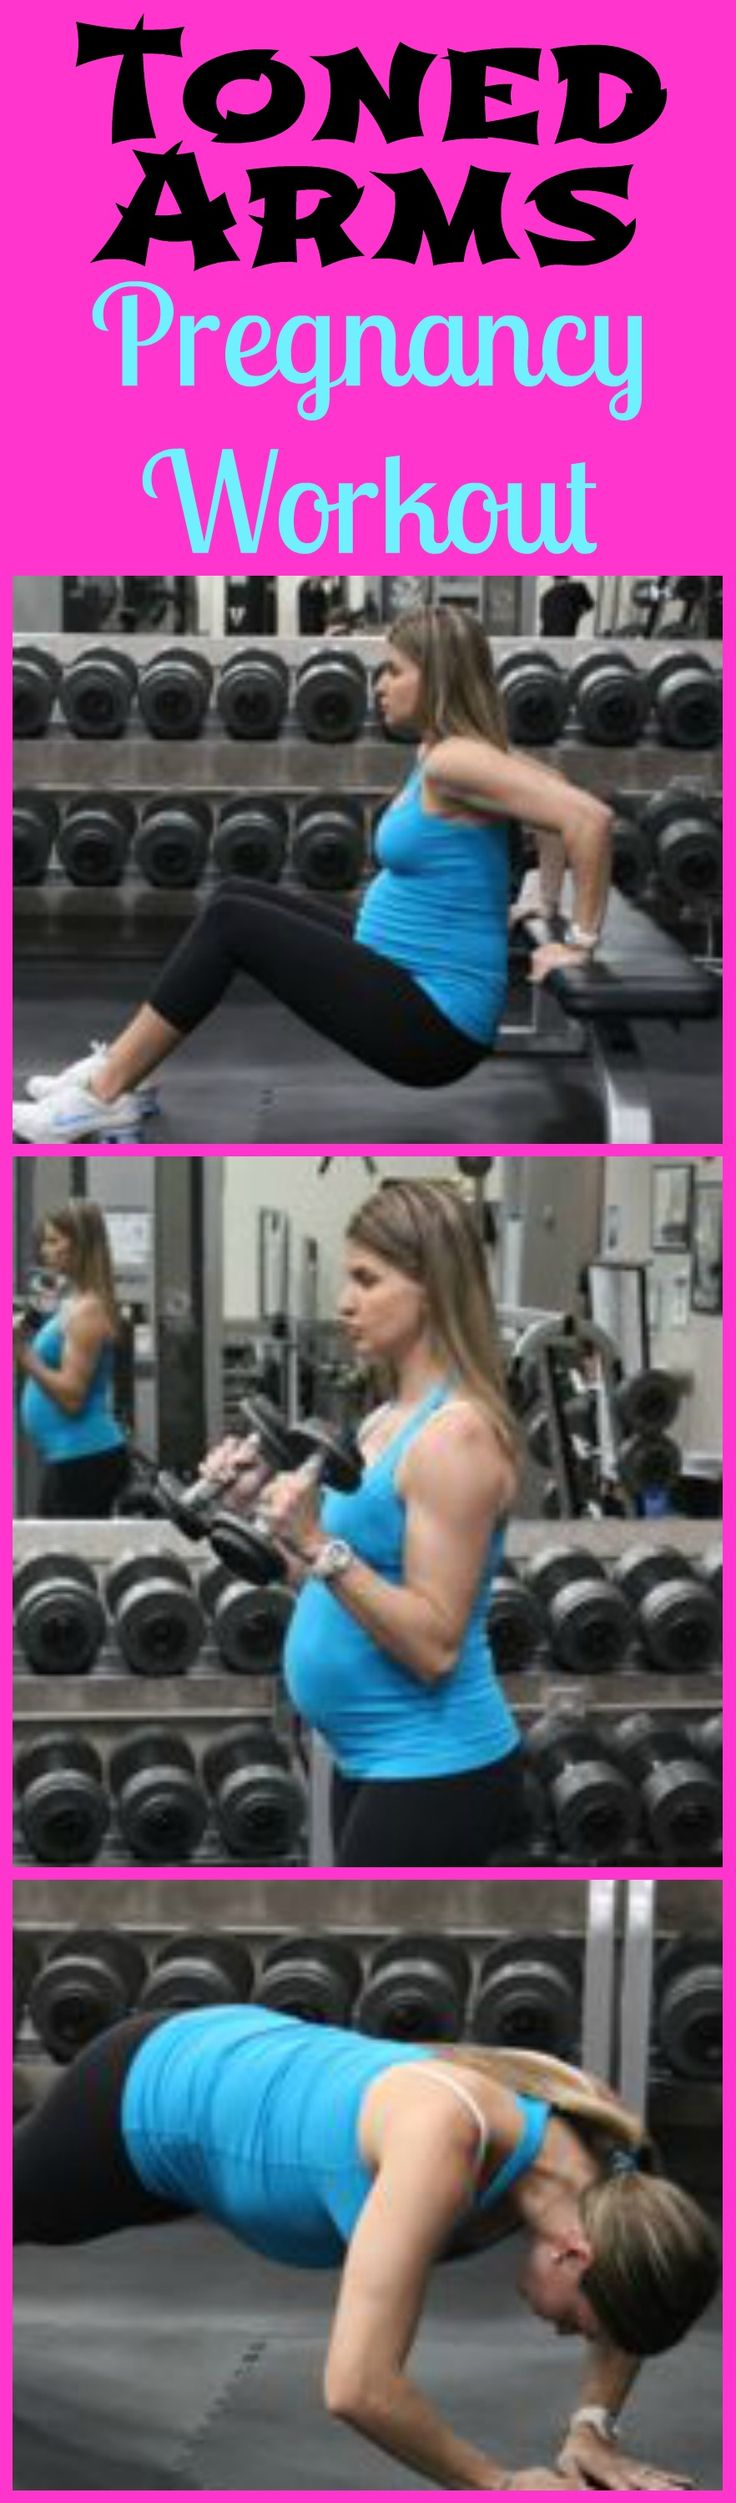 You don't have to have flabby arms just because your pregnant, this is a great pregnancy arms workout that can be done at home to keep the arms toned during pregnancy.